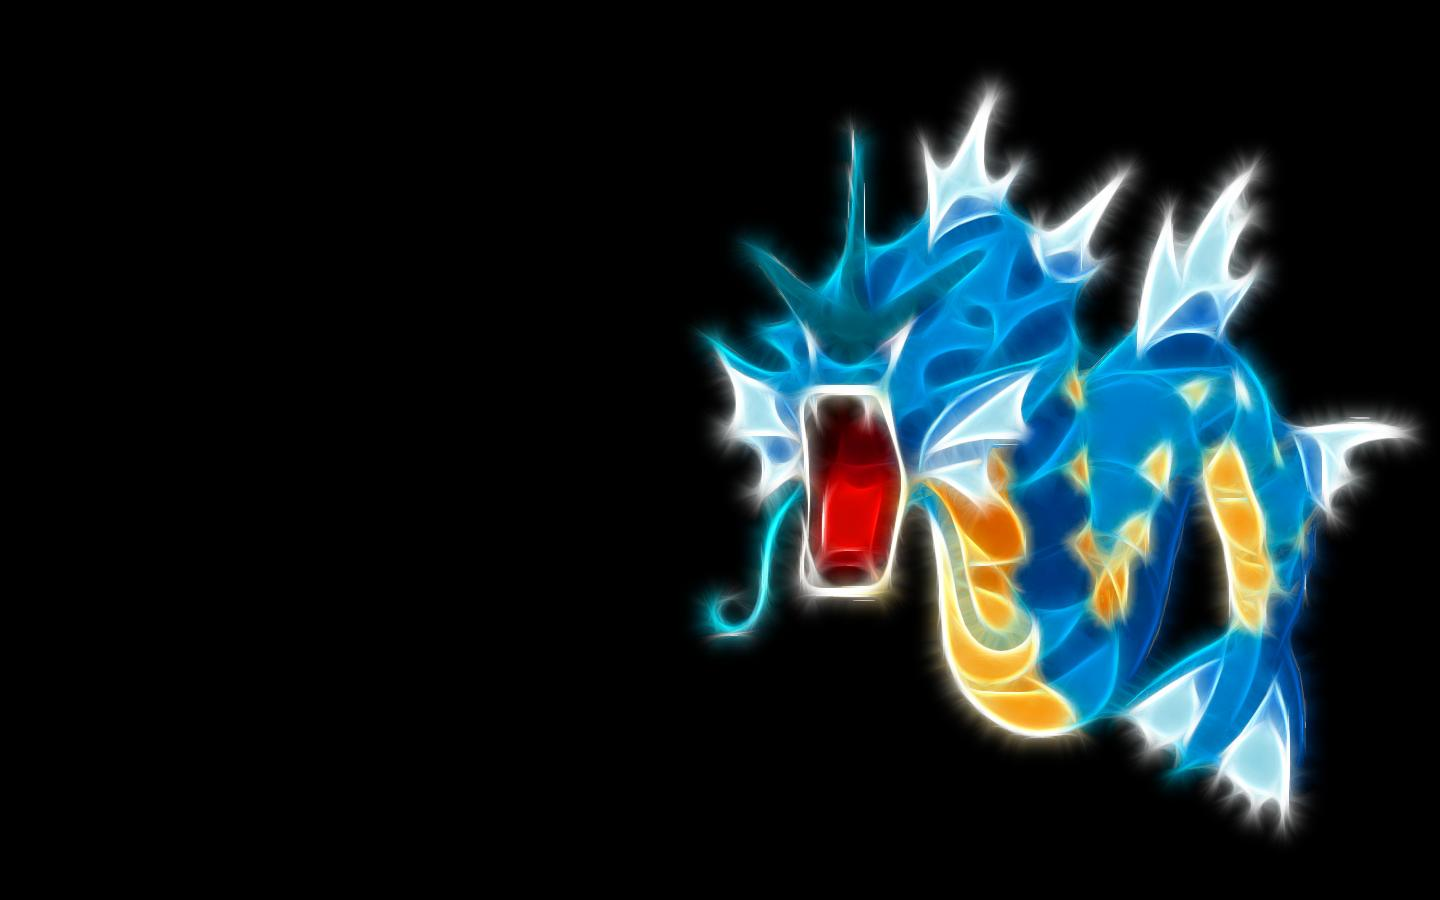 Pokemon Computer Wallpapers Desktop Backgrounds 1440x900 ID77172 1440x900